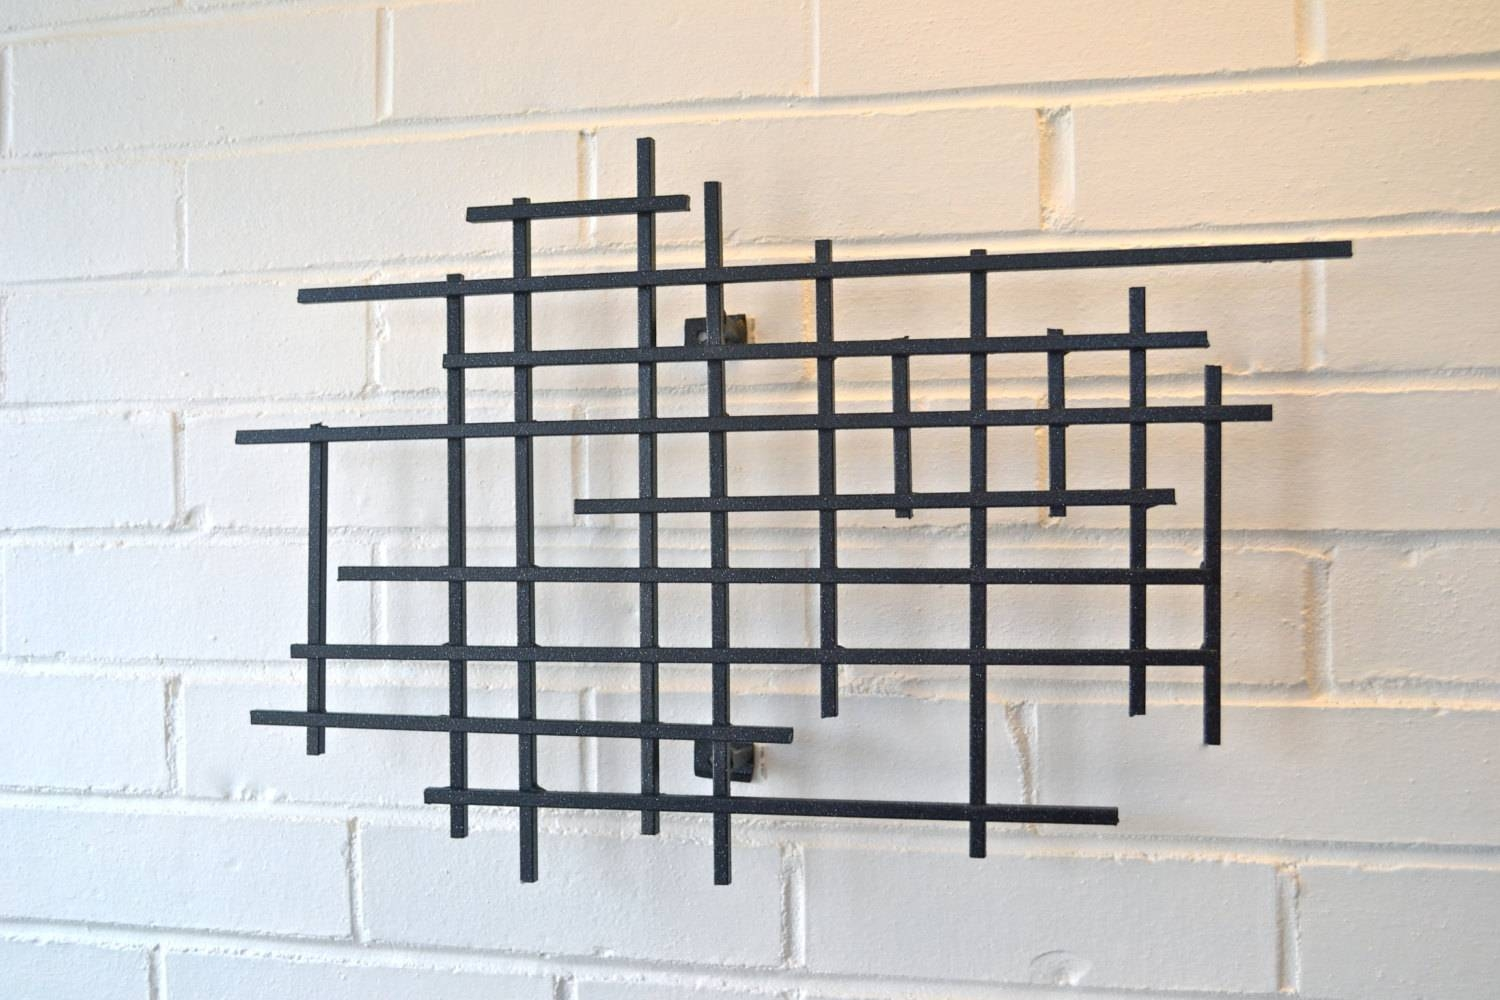 Small Square Metal Art Sculpture Modern Steel Decor Decoration 3D Intended For 2018 Small Metal Wall Art Decor (View 14 of 20)